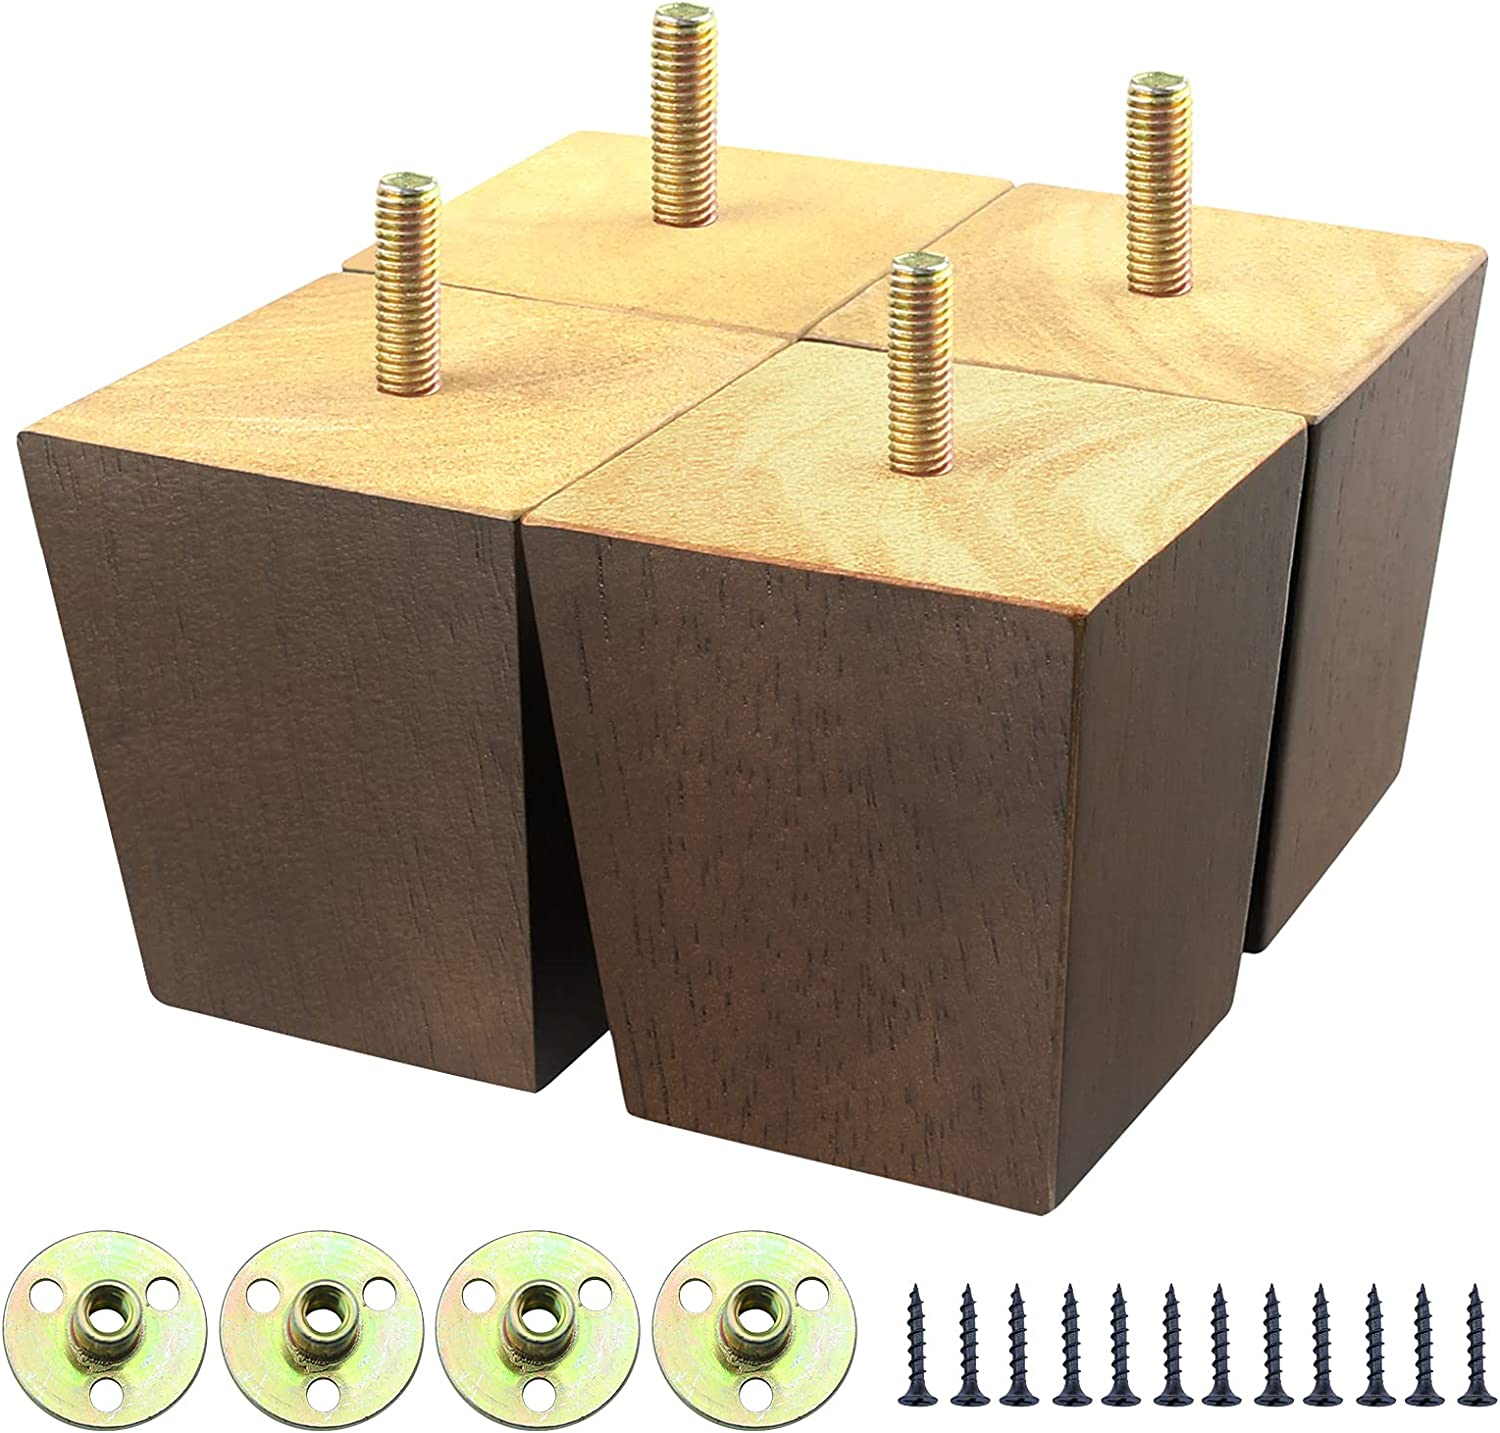 Wooden Sofa Legs 3 inch, Brown Wood Furniture Legs Set of 4, Replacement Couch Legs for Armchair, Cabinet, Mid Century Modern Dresser Or Home DIY Projects Bun Feet